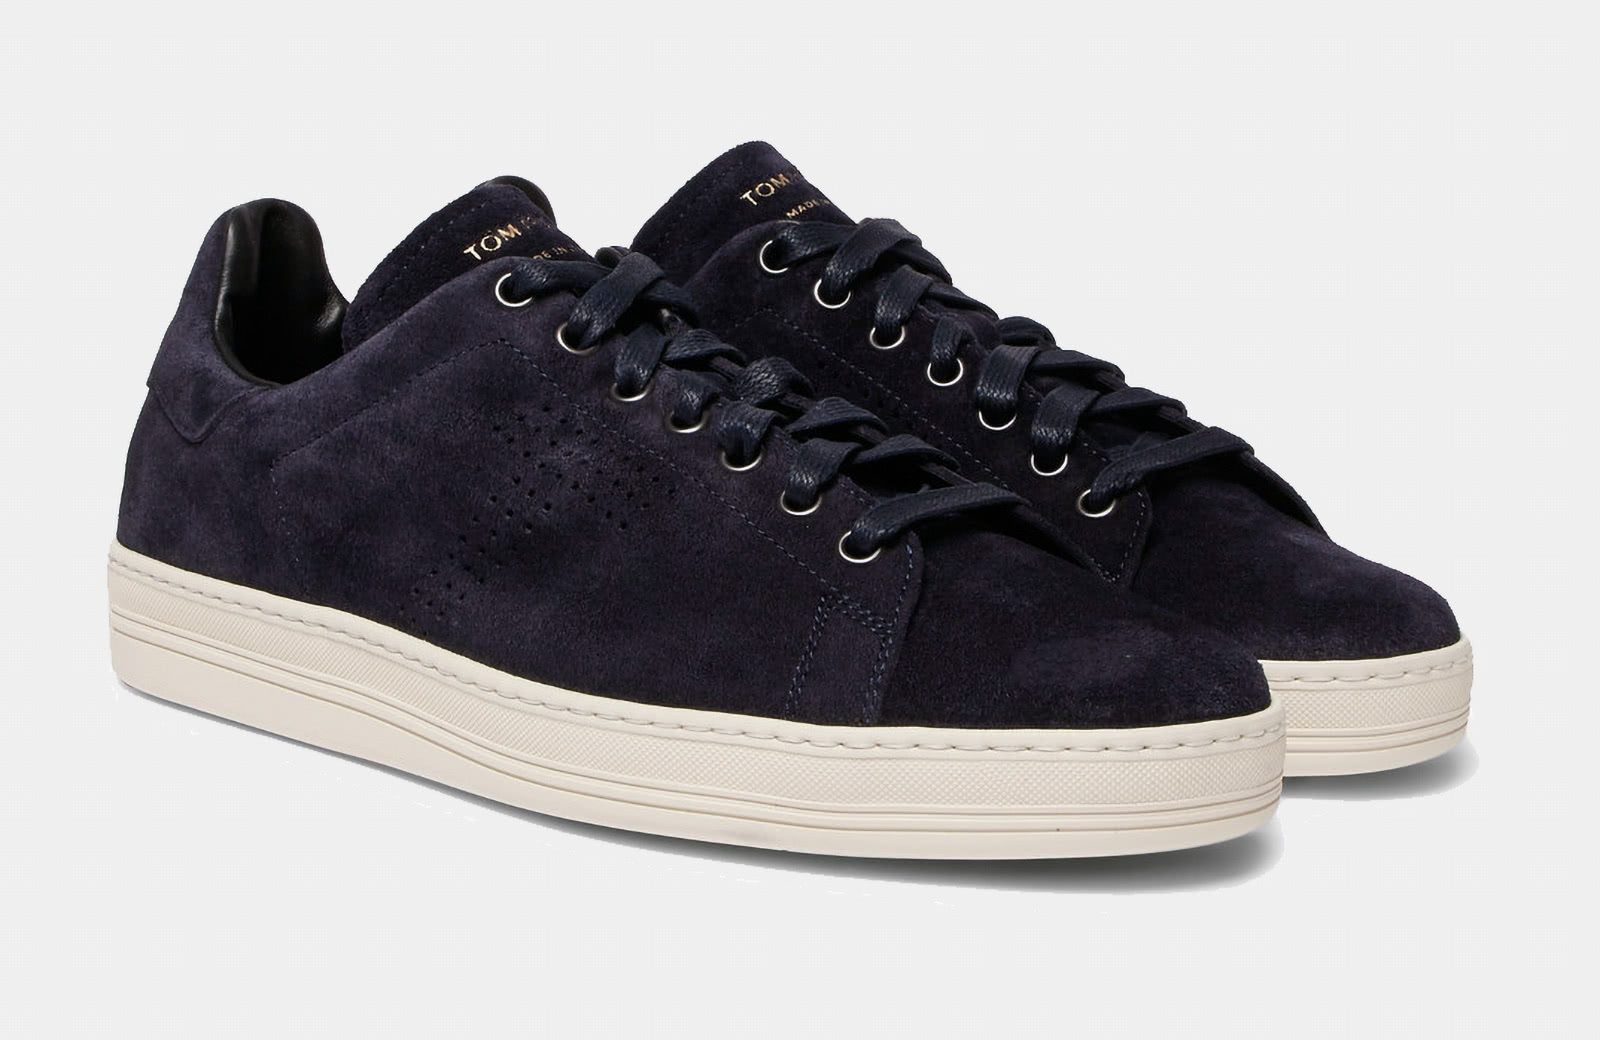 best durable sneaker men Tom Ford luxury style - Luxe Digital